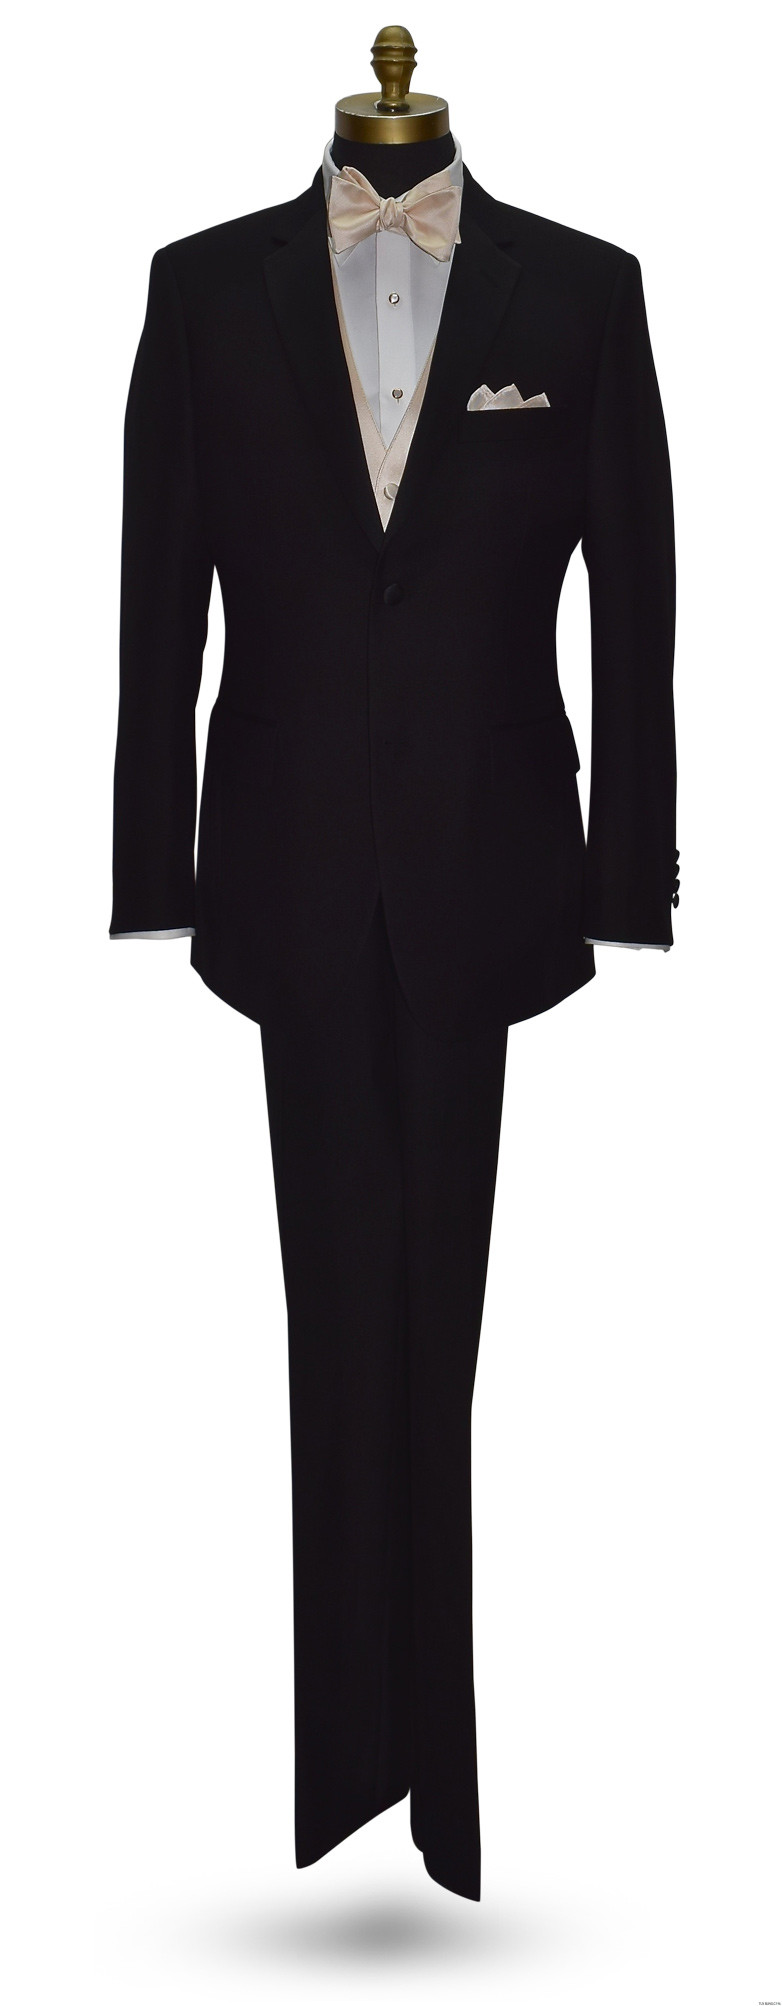 black wedding tuxedo with champagne vest and bowtie on tuxbling.com